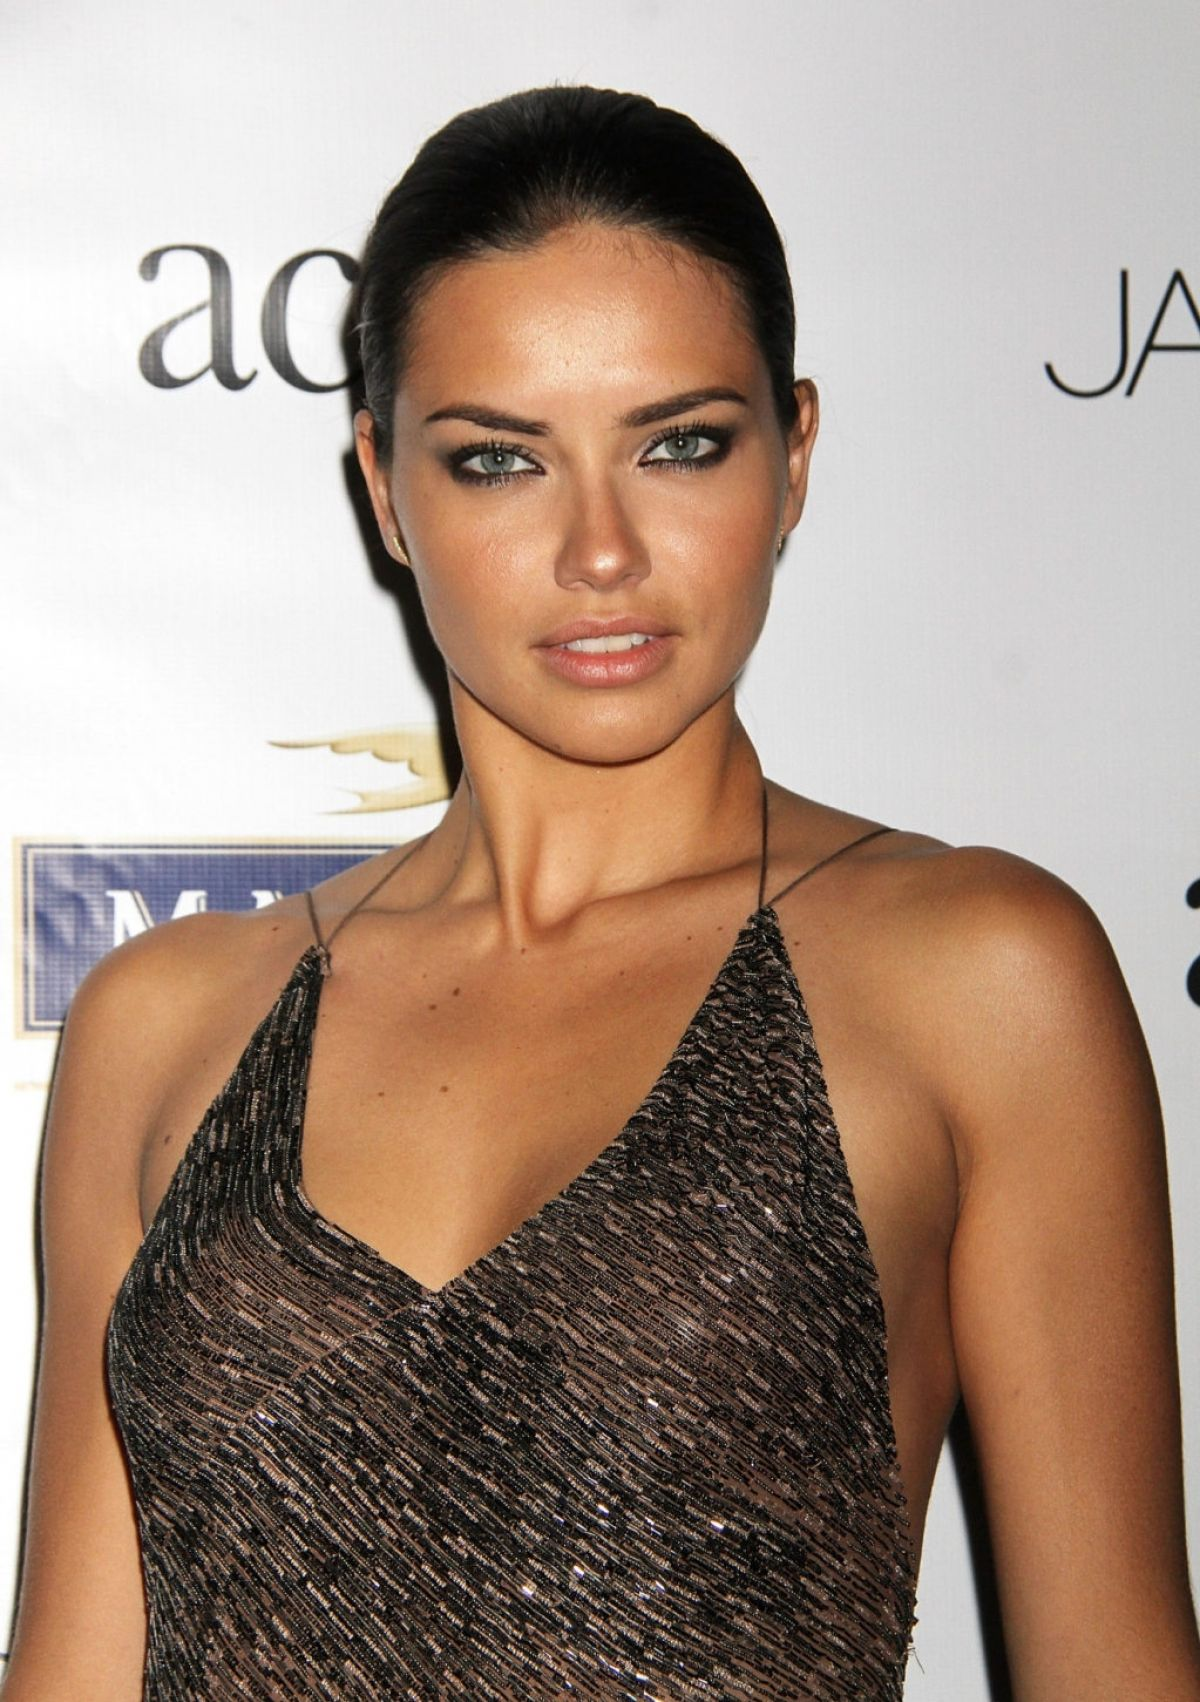 Adriana lima hairstyles 2014 - Adriana Lima At 2014 Young Friends Of Acria Summer Soiree In New York